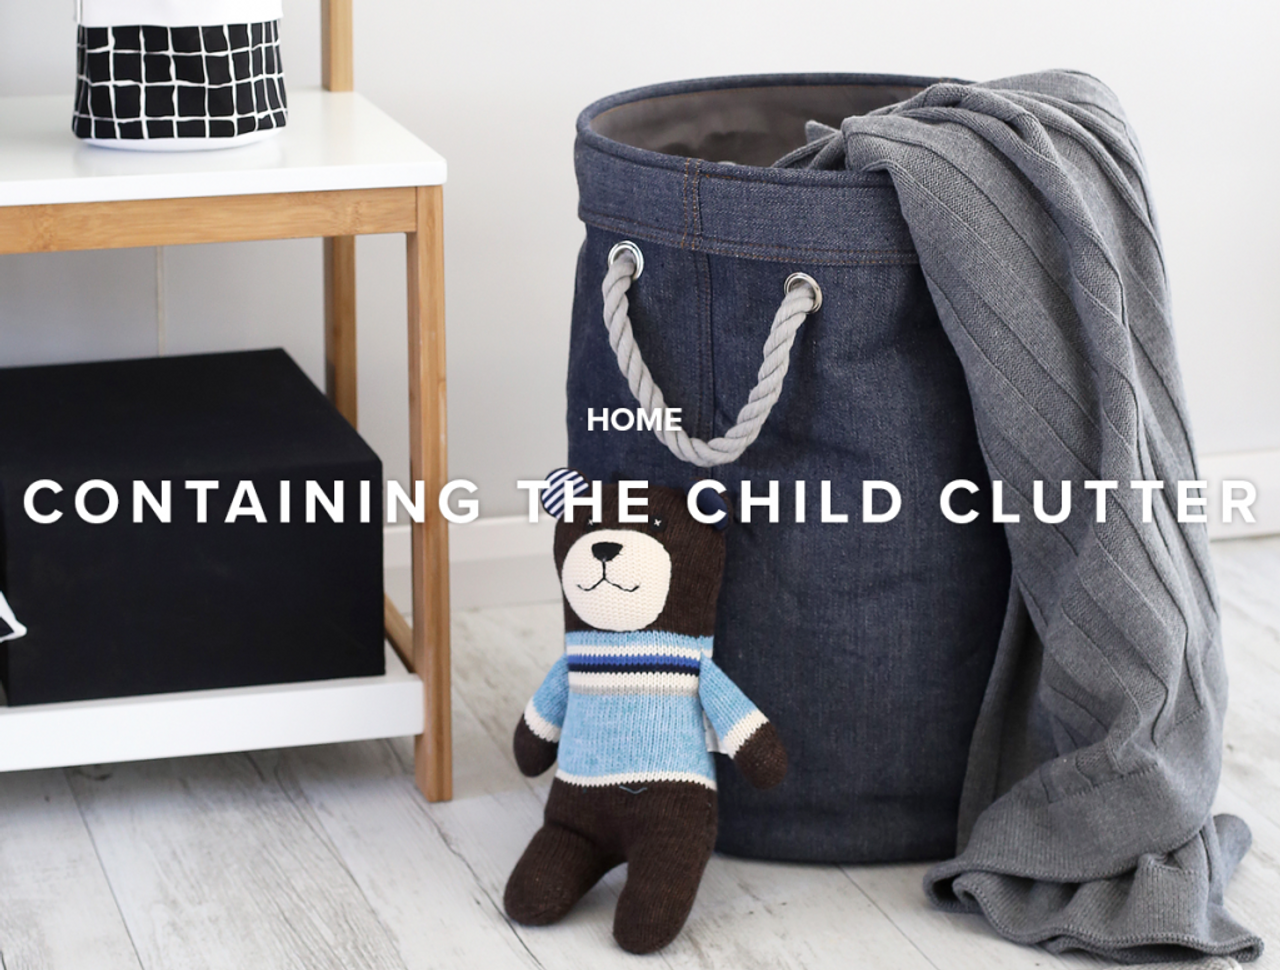 Containing the Child Clutter